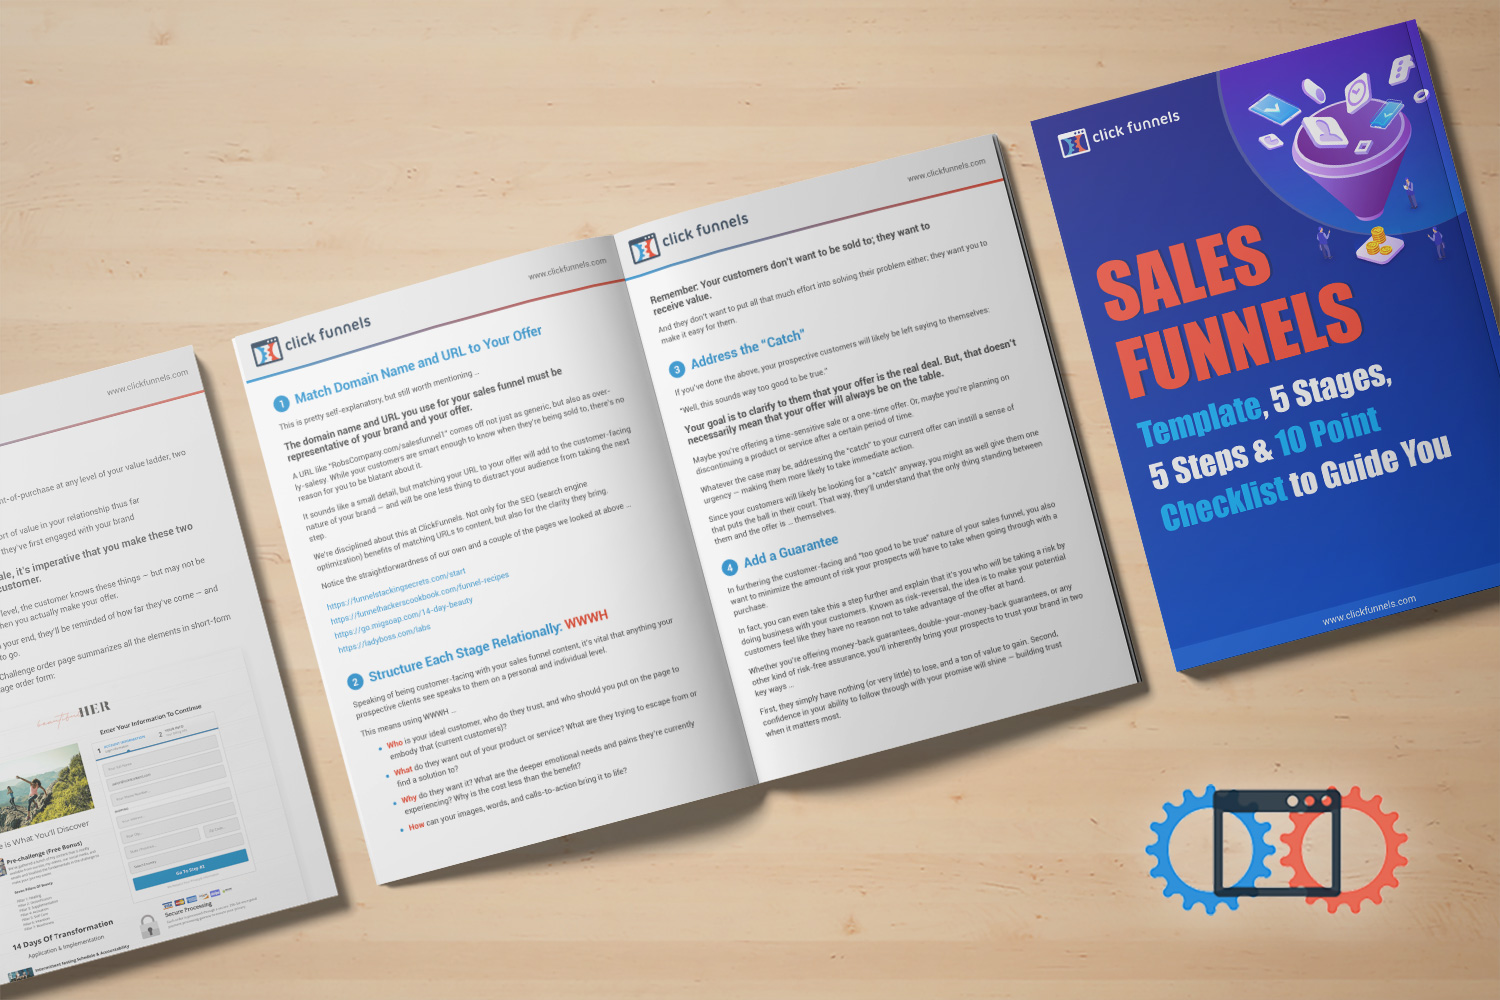 Download the sales funnel template and 10 point checklist